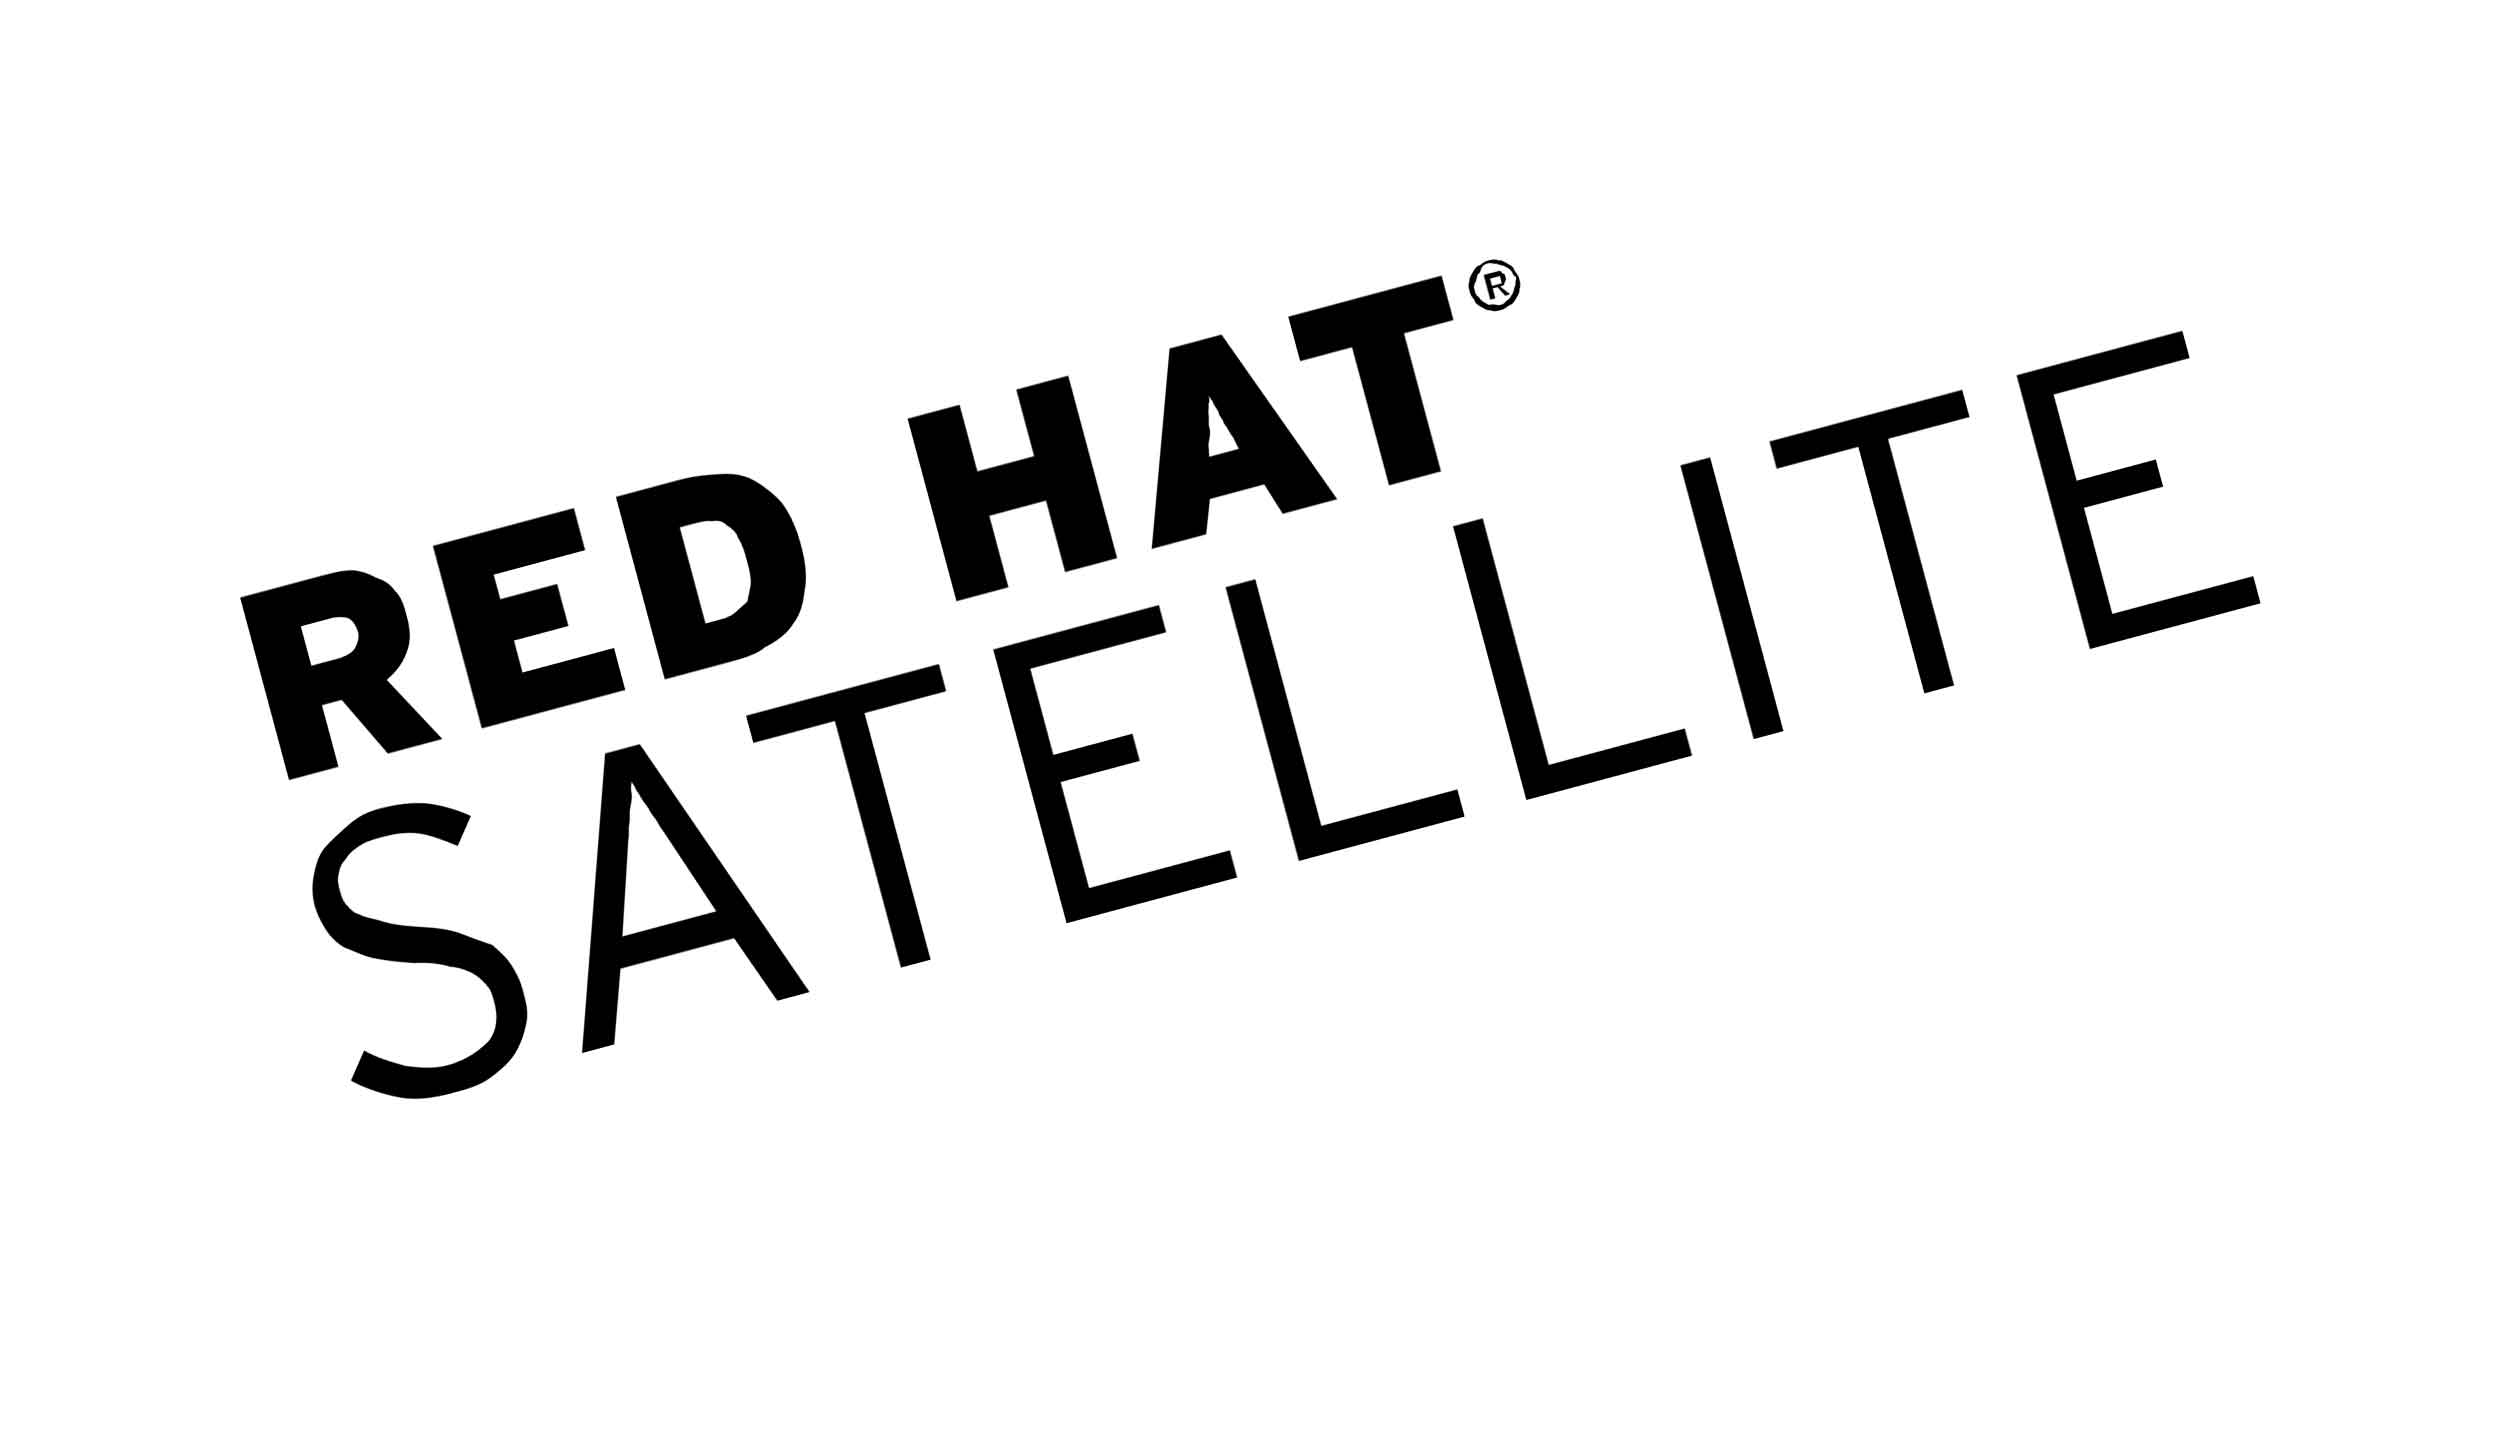 New improvements for Red Hat Satellite